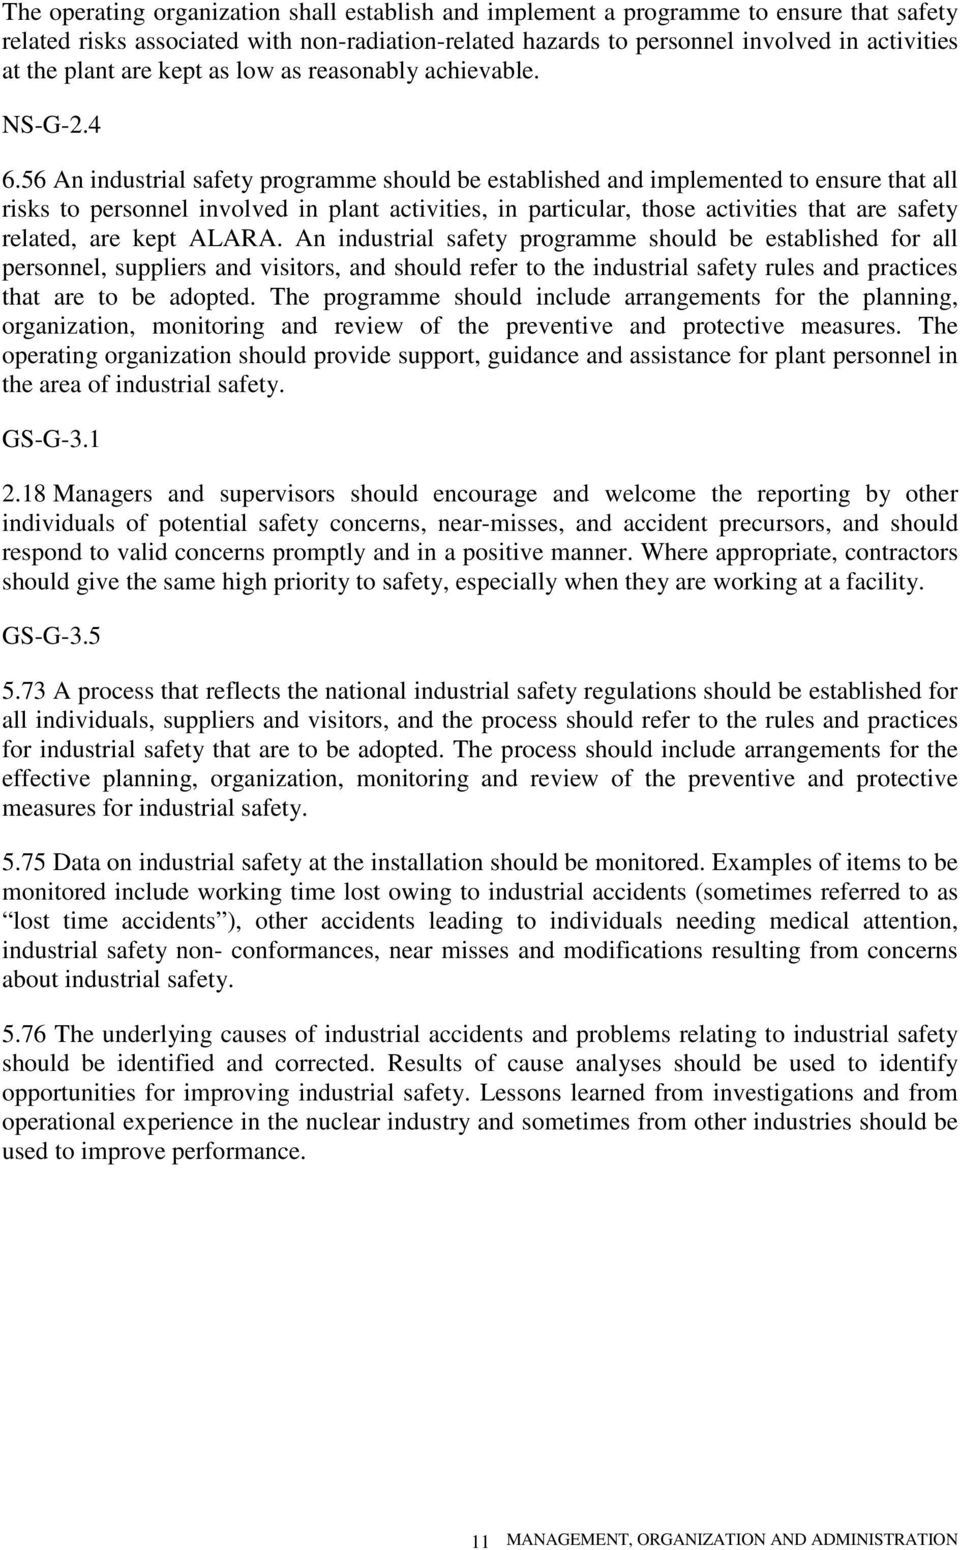 56 An industrial safety programme should be established and implemented to ensure that all risks to personnel involved in plant activities, in particular, those activities that are safety related,